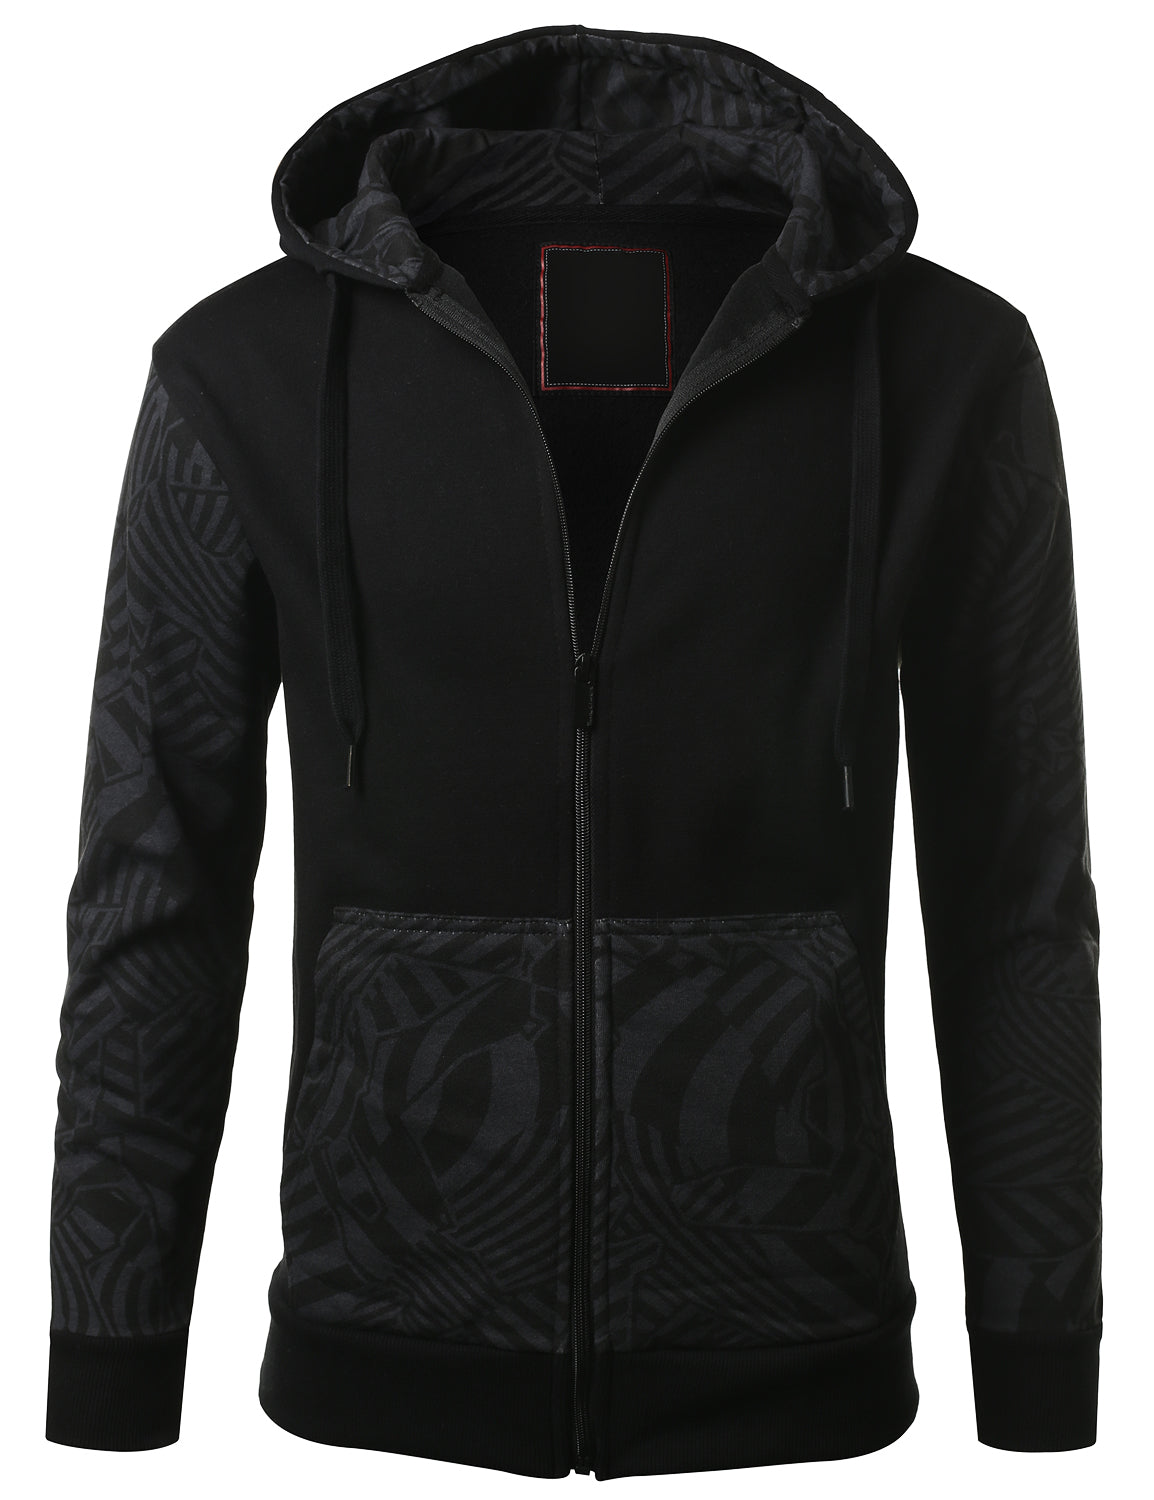 BLACK - Geometric Print Hooded Jacket BLACK SMALL